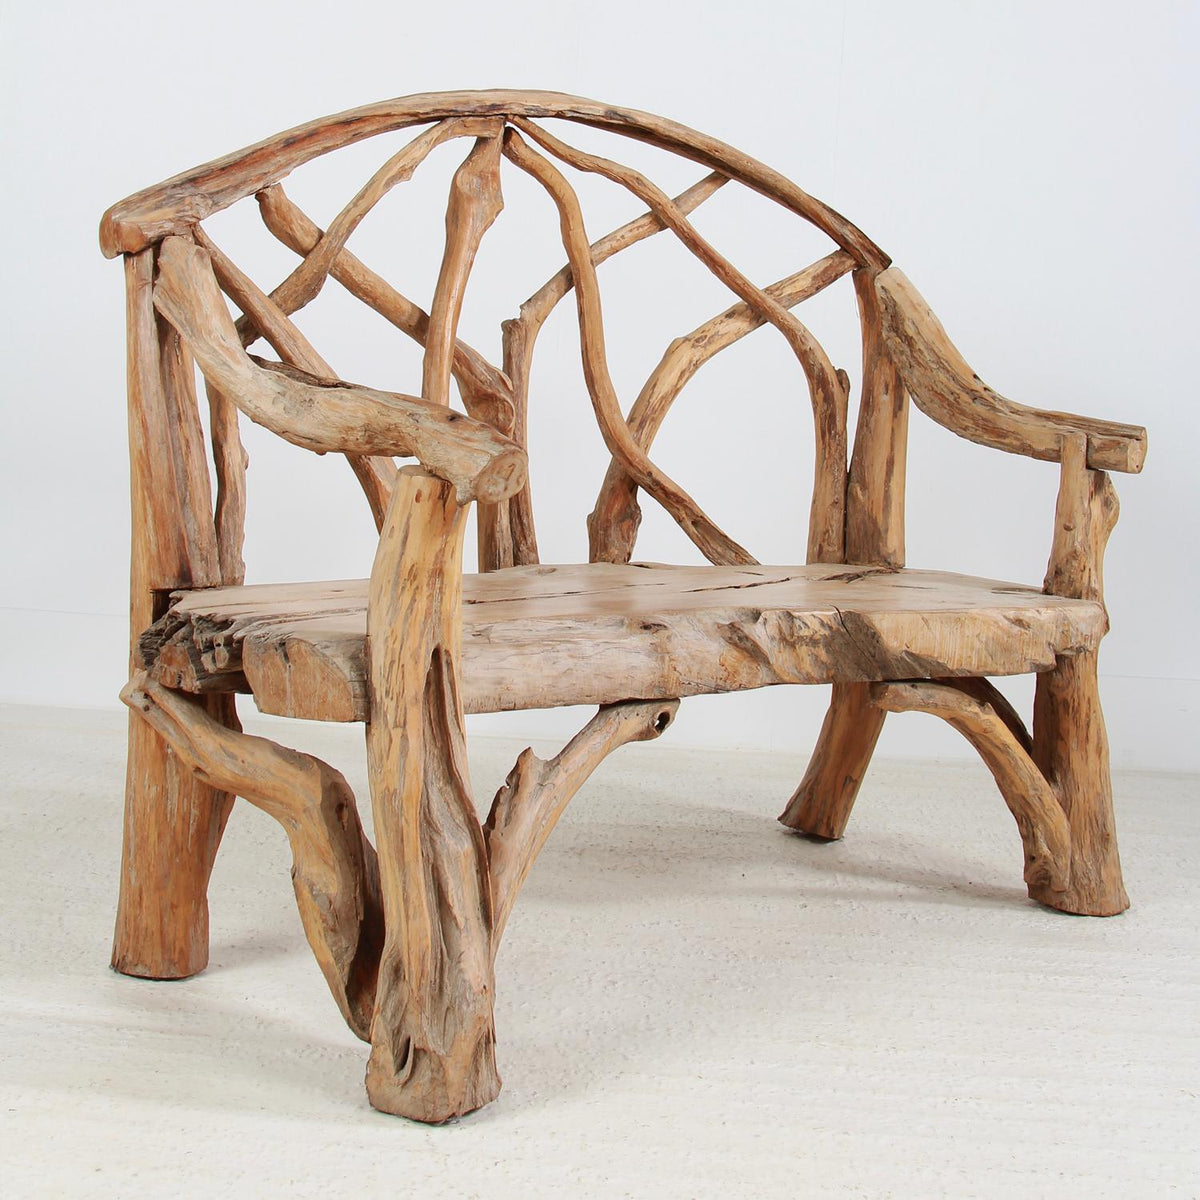 Enormous Sculptural Teak Root Garden Bench